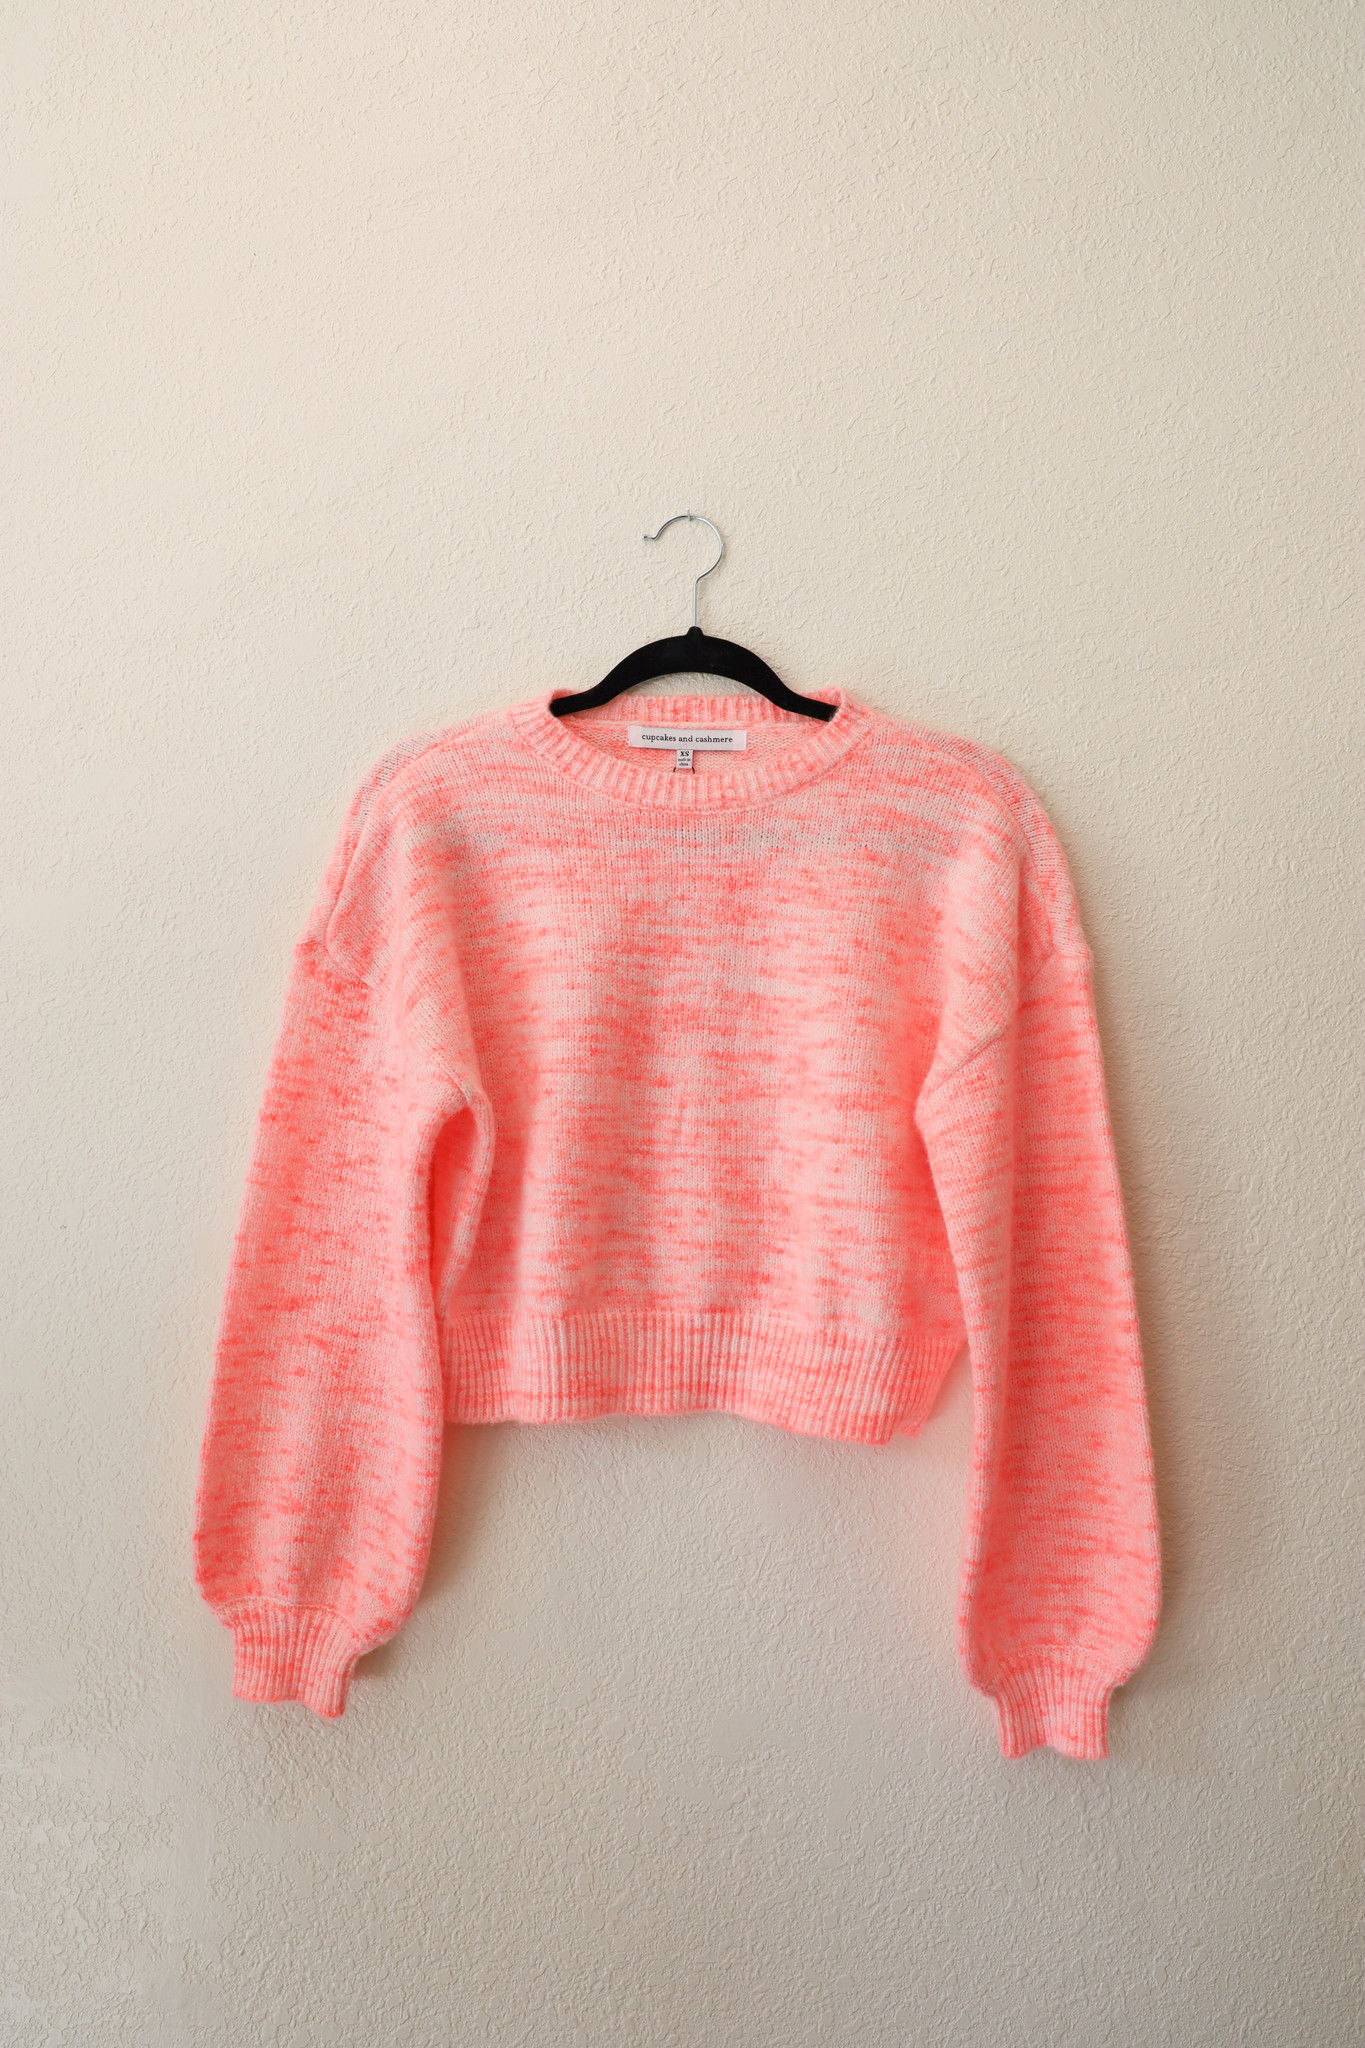 Image of: Label Cupcakes And Cashmere Billie Sweater Label